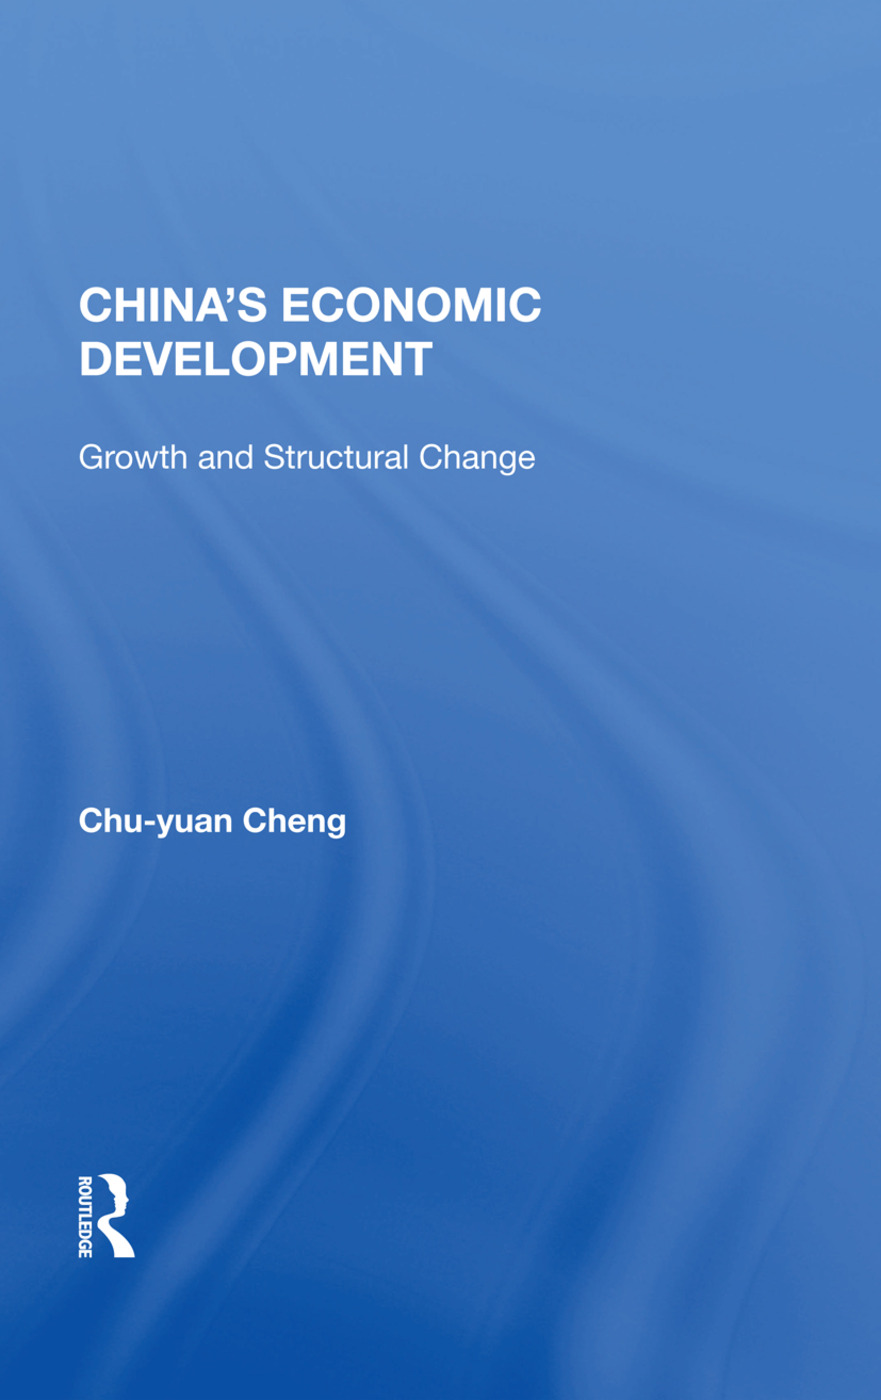 Changes in the Structure of the Economy